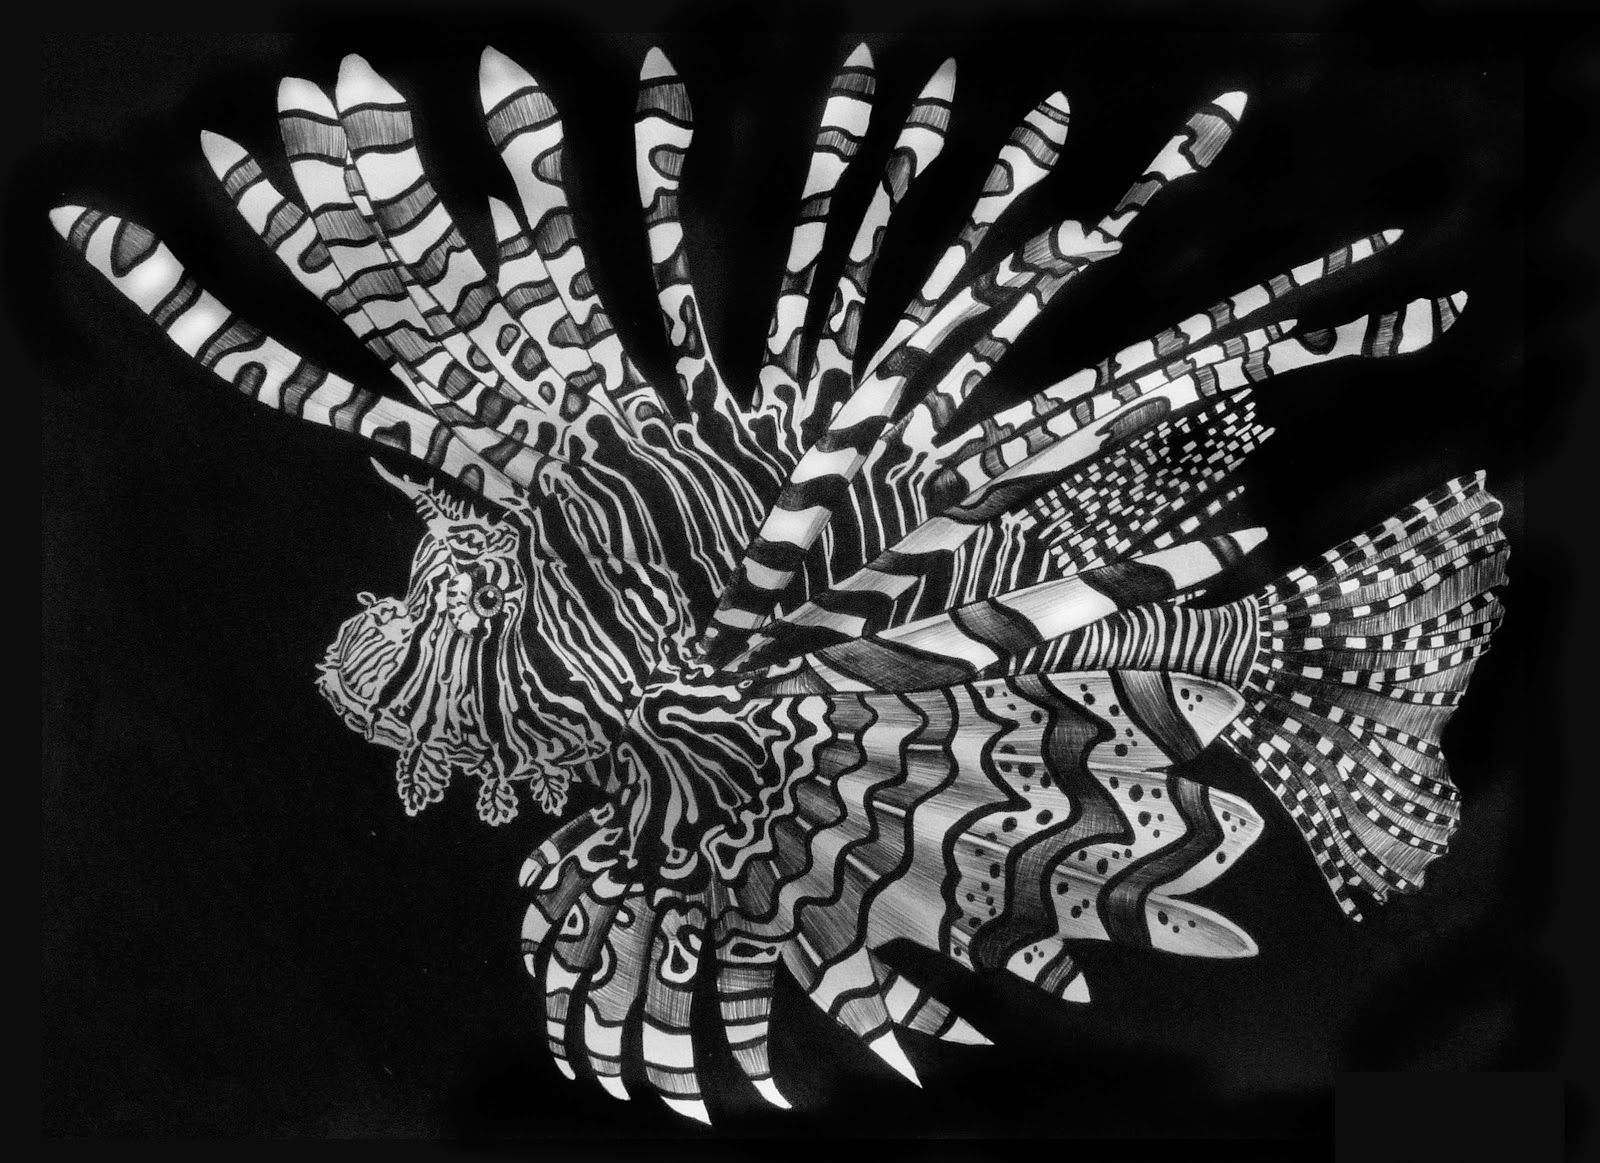 01-Lionfish-Tim-Jeffs-All-Creatures-Great-and-Small-Ink-Drawings-www-designstack-co